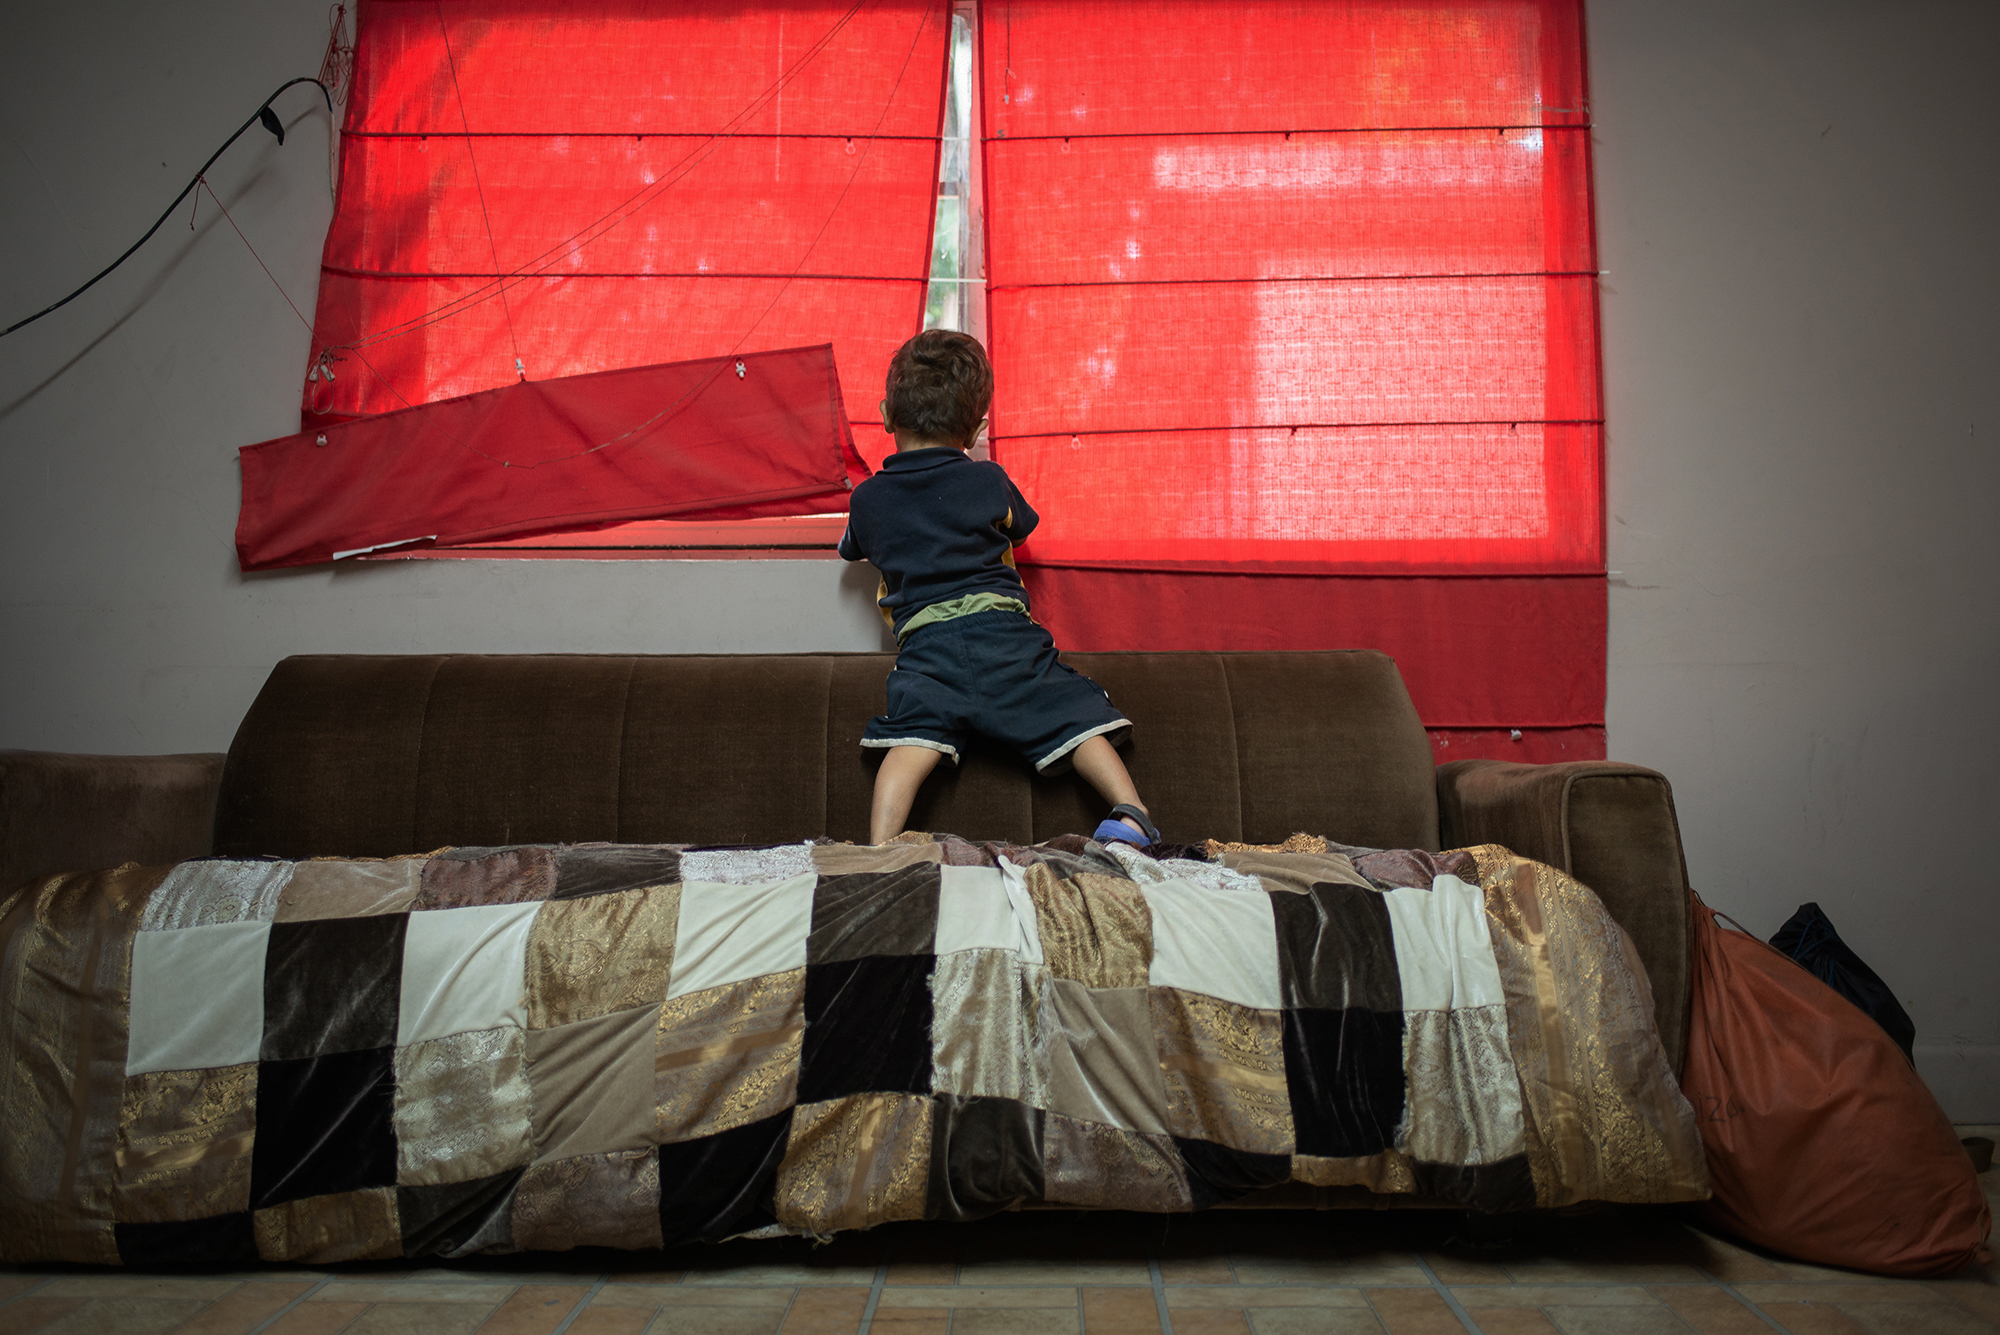 """Denis Jose (3 years old), from Honduras looks through the window at """"Casa del Migrante Frontera Digna"""" created by priest Jose Guadalupe Valdes Alvarado. Her mother Diana and him left their homecountry Honduras due to the violent situation her country is facing; """"I didn't want that future for my kid"""", she said. """"Casa del Migrante Frontera Digna"""" was created to provide lodging for migrants from different countries who arrive after long journeys that last several months to cross into the United States. Immigrants can spend three nights in the shelter where they are offered beds, food, hygiene items and a space to regain strength. Piedras Negras, Coahuila, Mexico. June 21st, 2018. Photographer: Luján Agusti."""